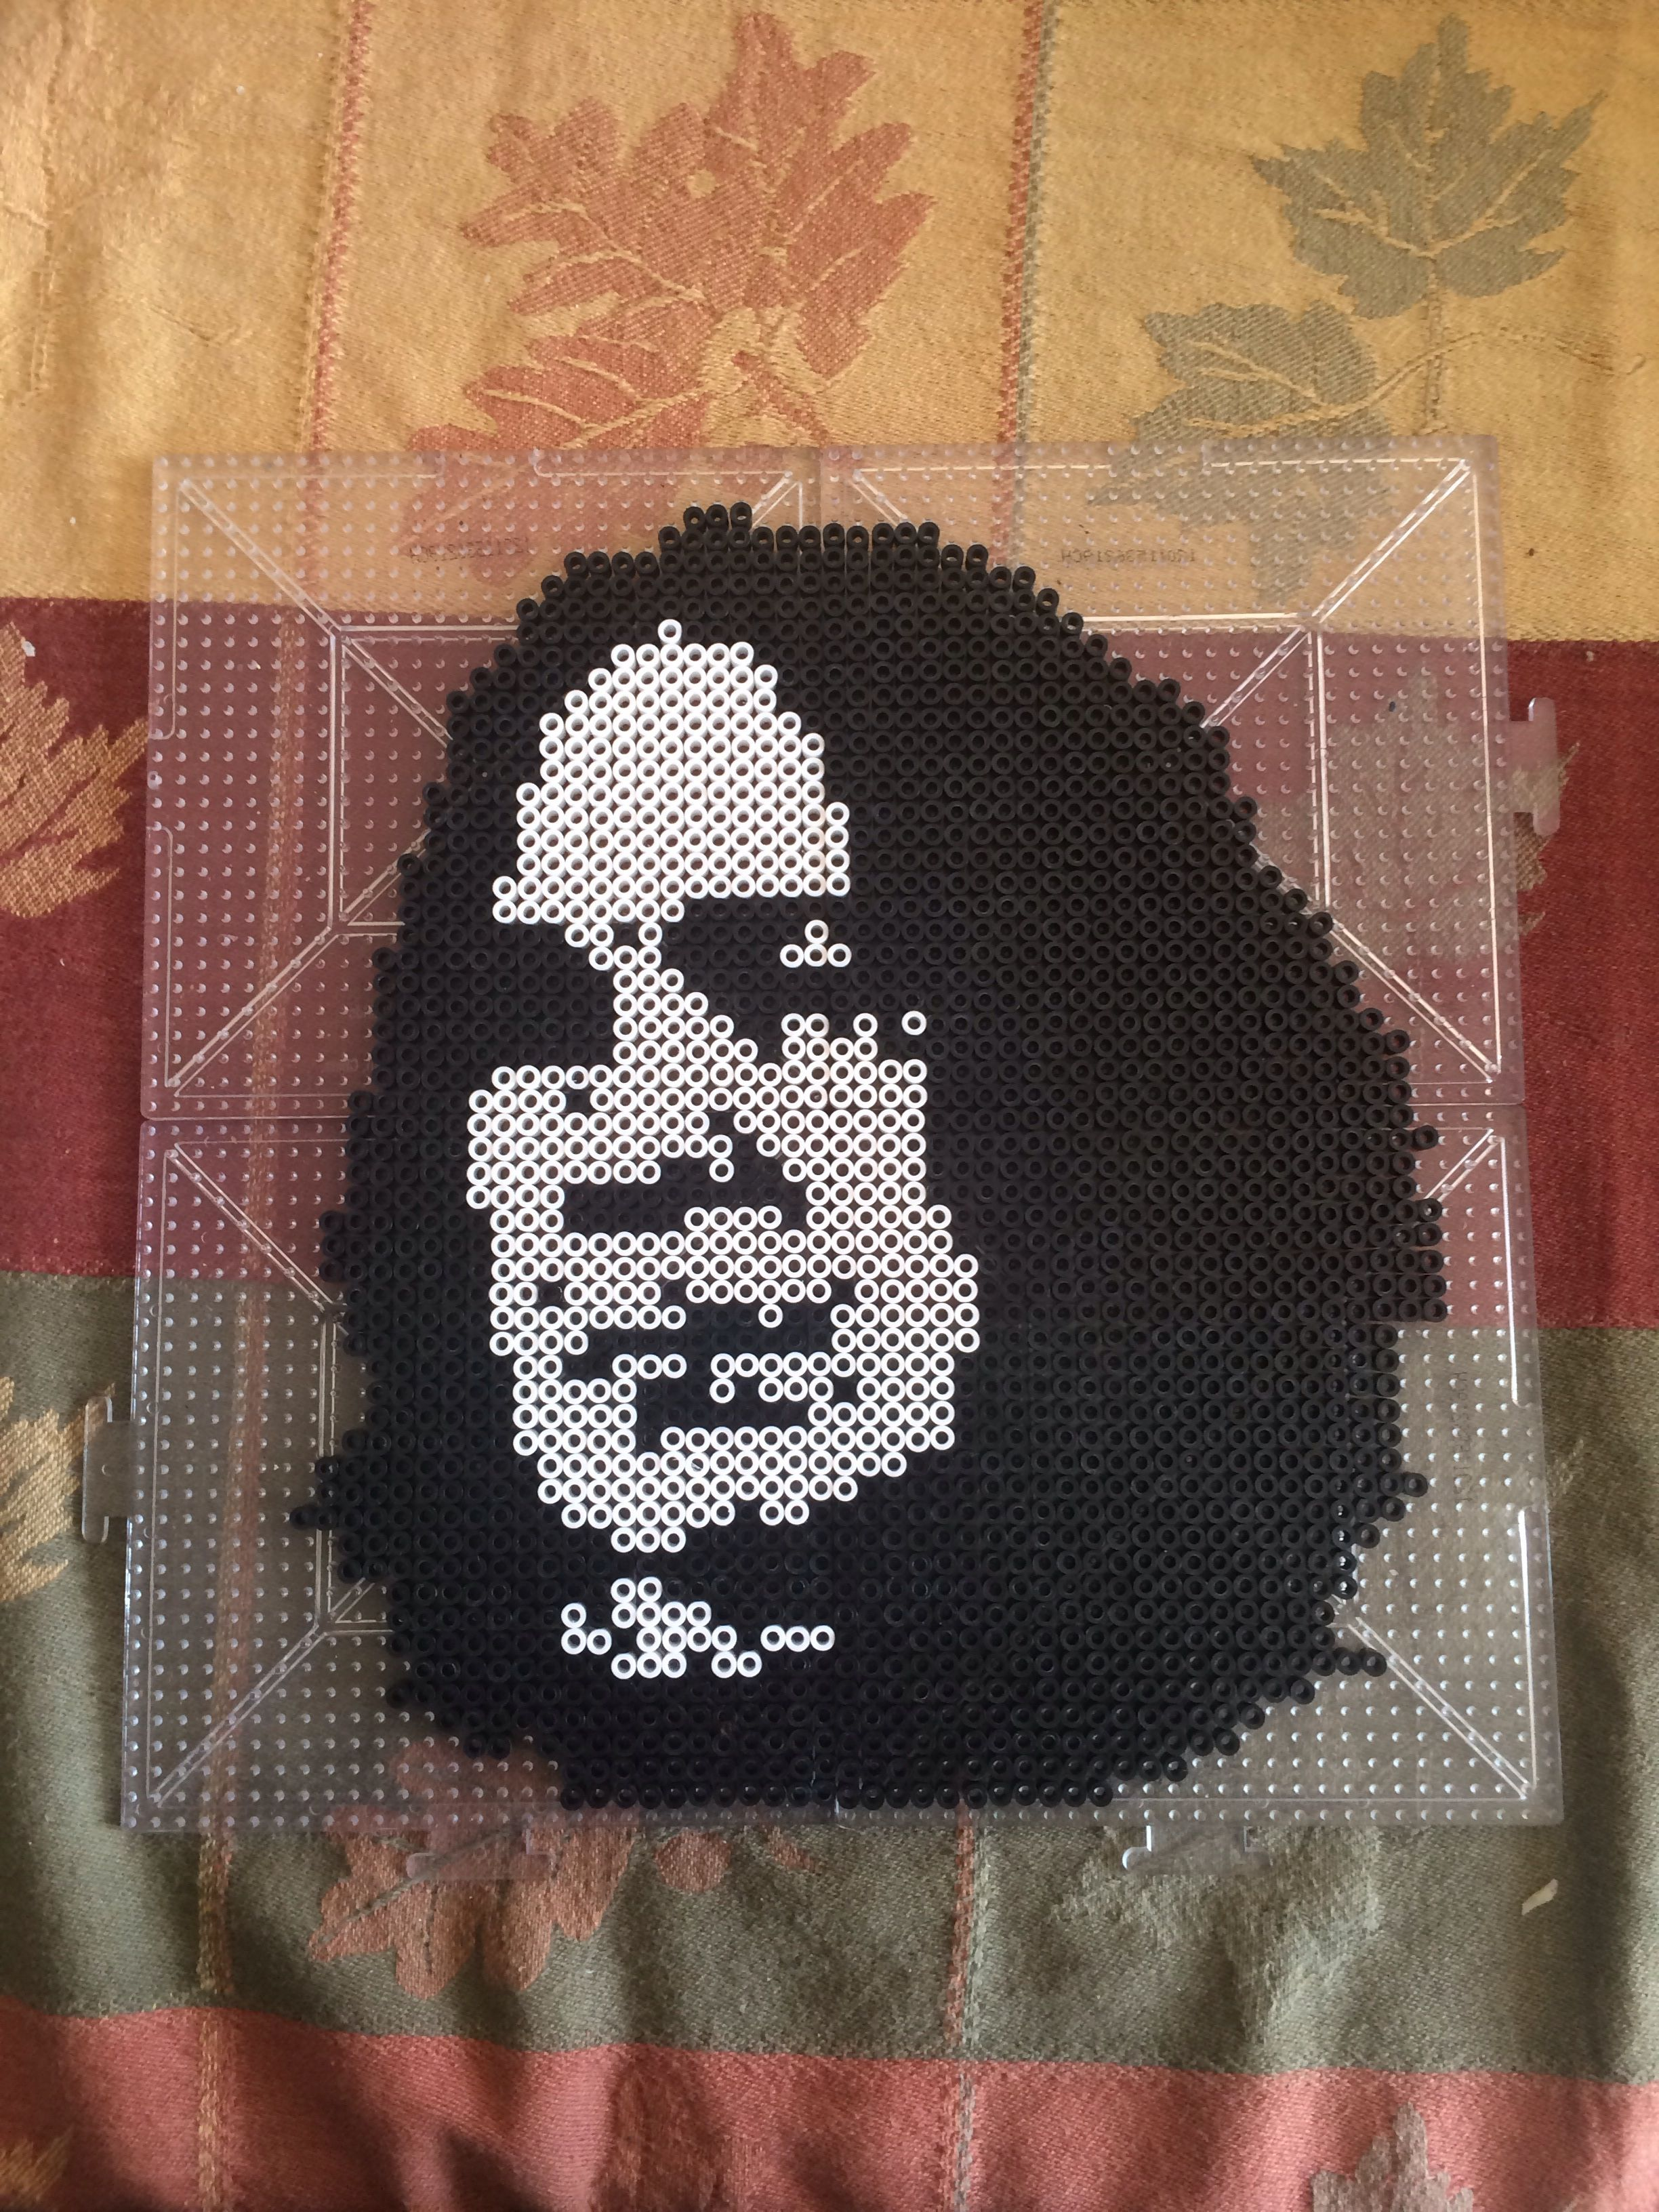 severus snape from harry potter made from black and white perler beads made by kelsey flaherty. Black Bedroom Furniture Sets. Home Design Ideas